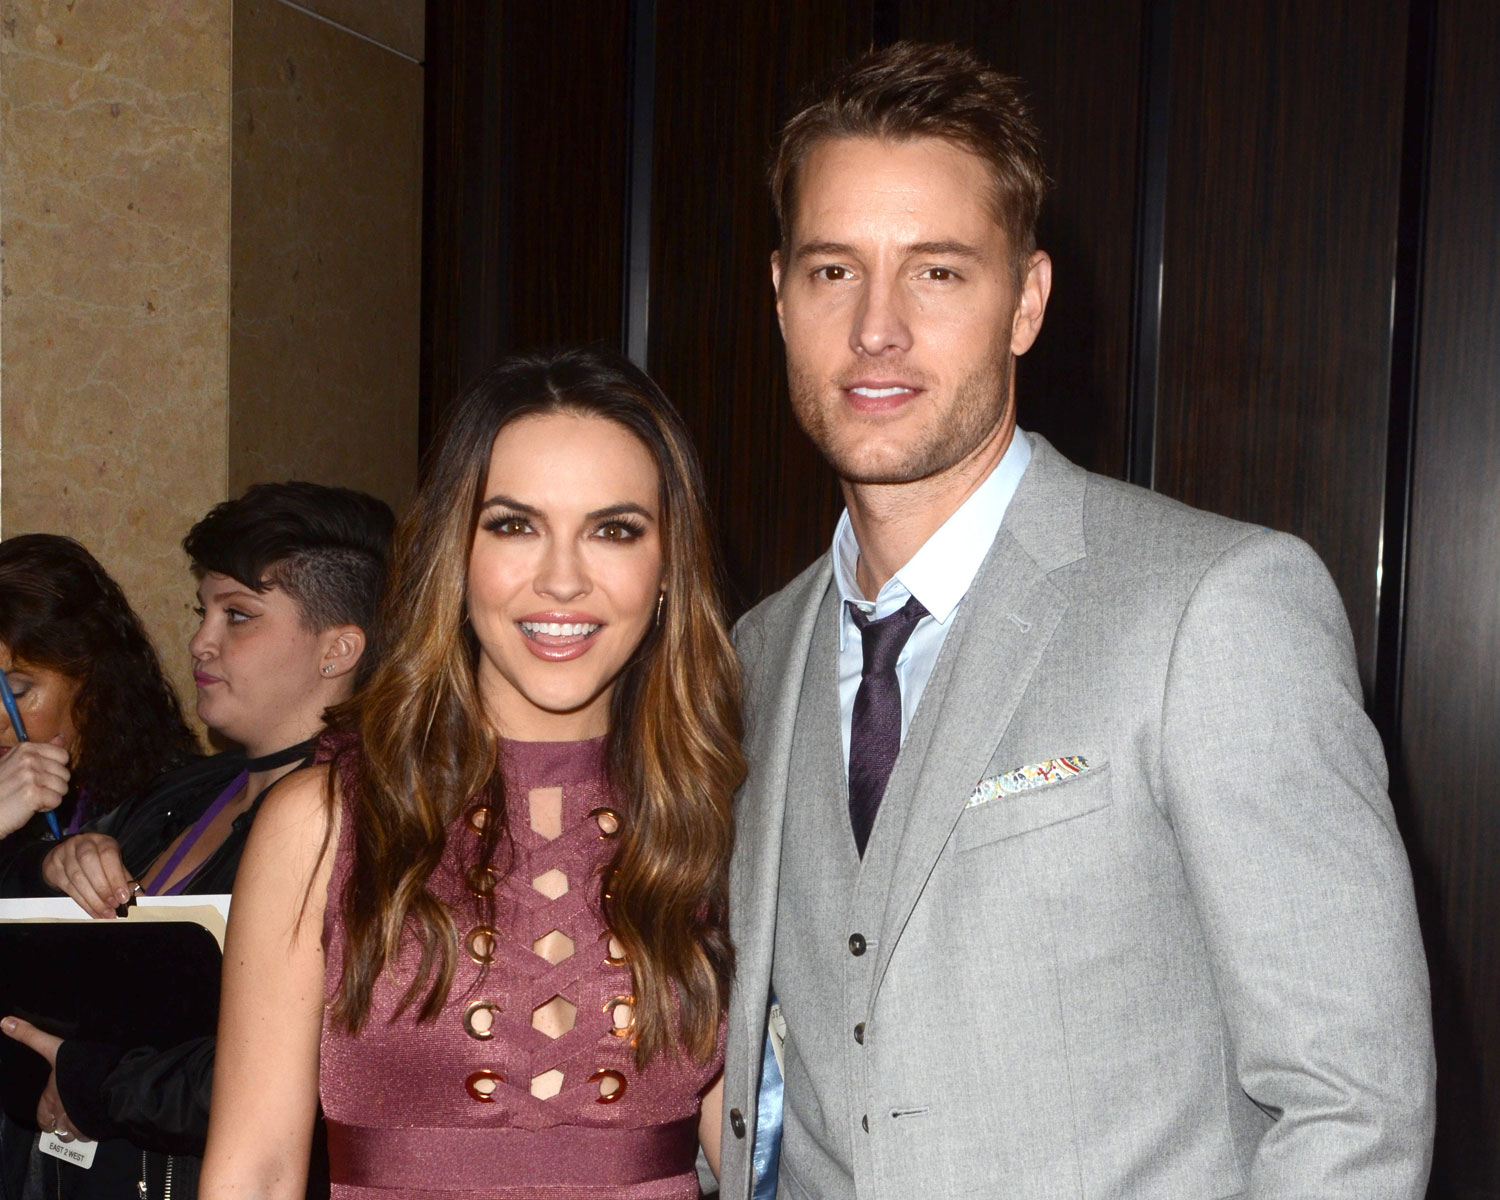 Justin Hartley marred his fiancee Chrishell Stause on Saturday, October 28